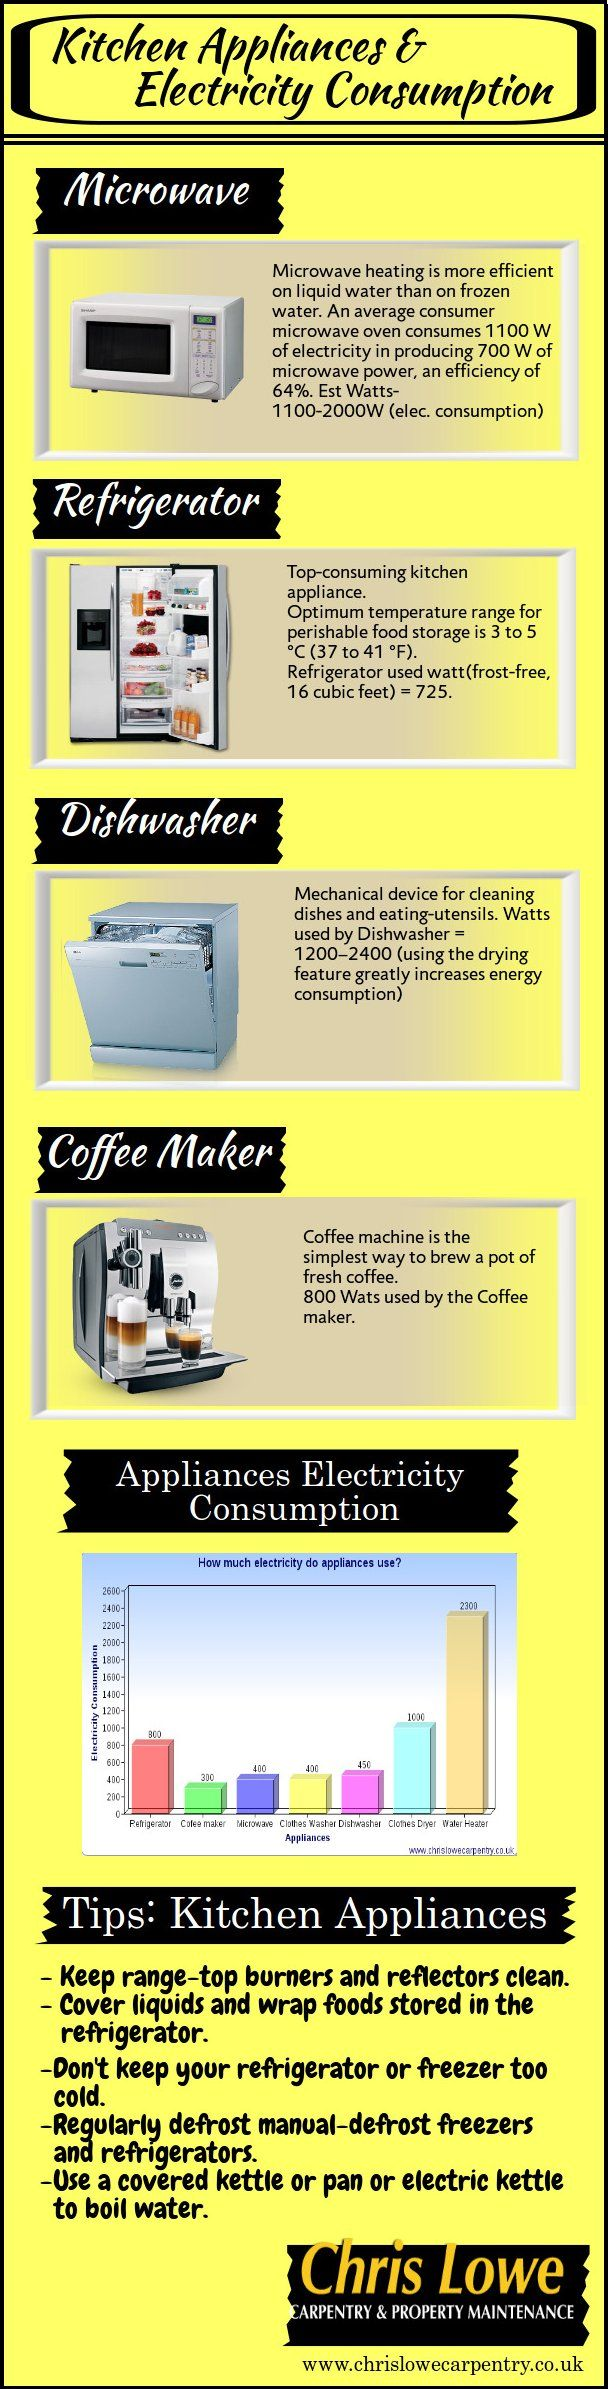 Take a look at infographic to see different kitchen appliances & their electricity consumption rate with the energy saving tips.